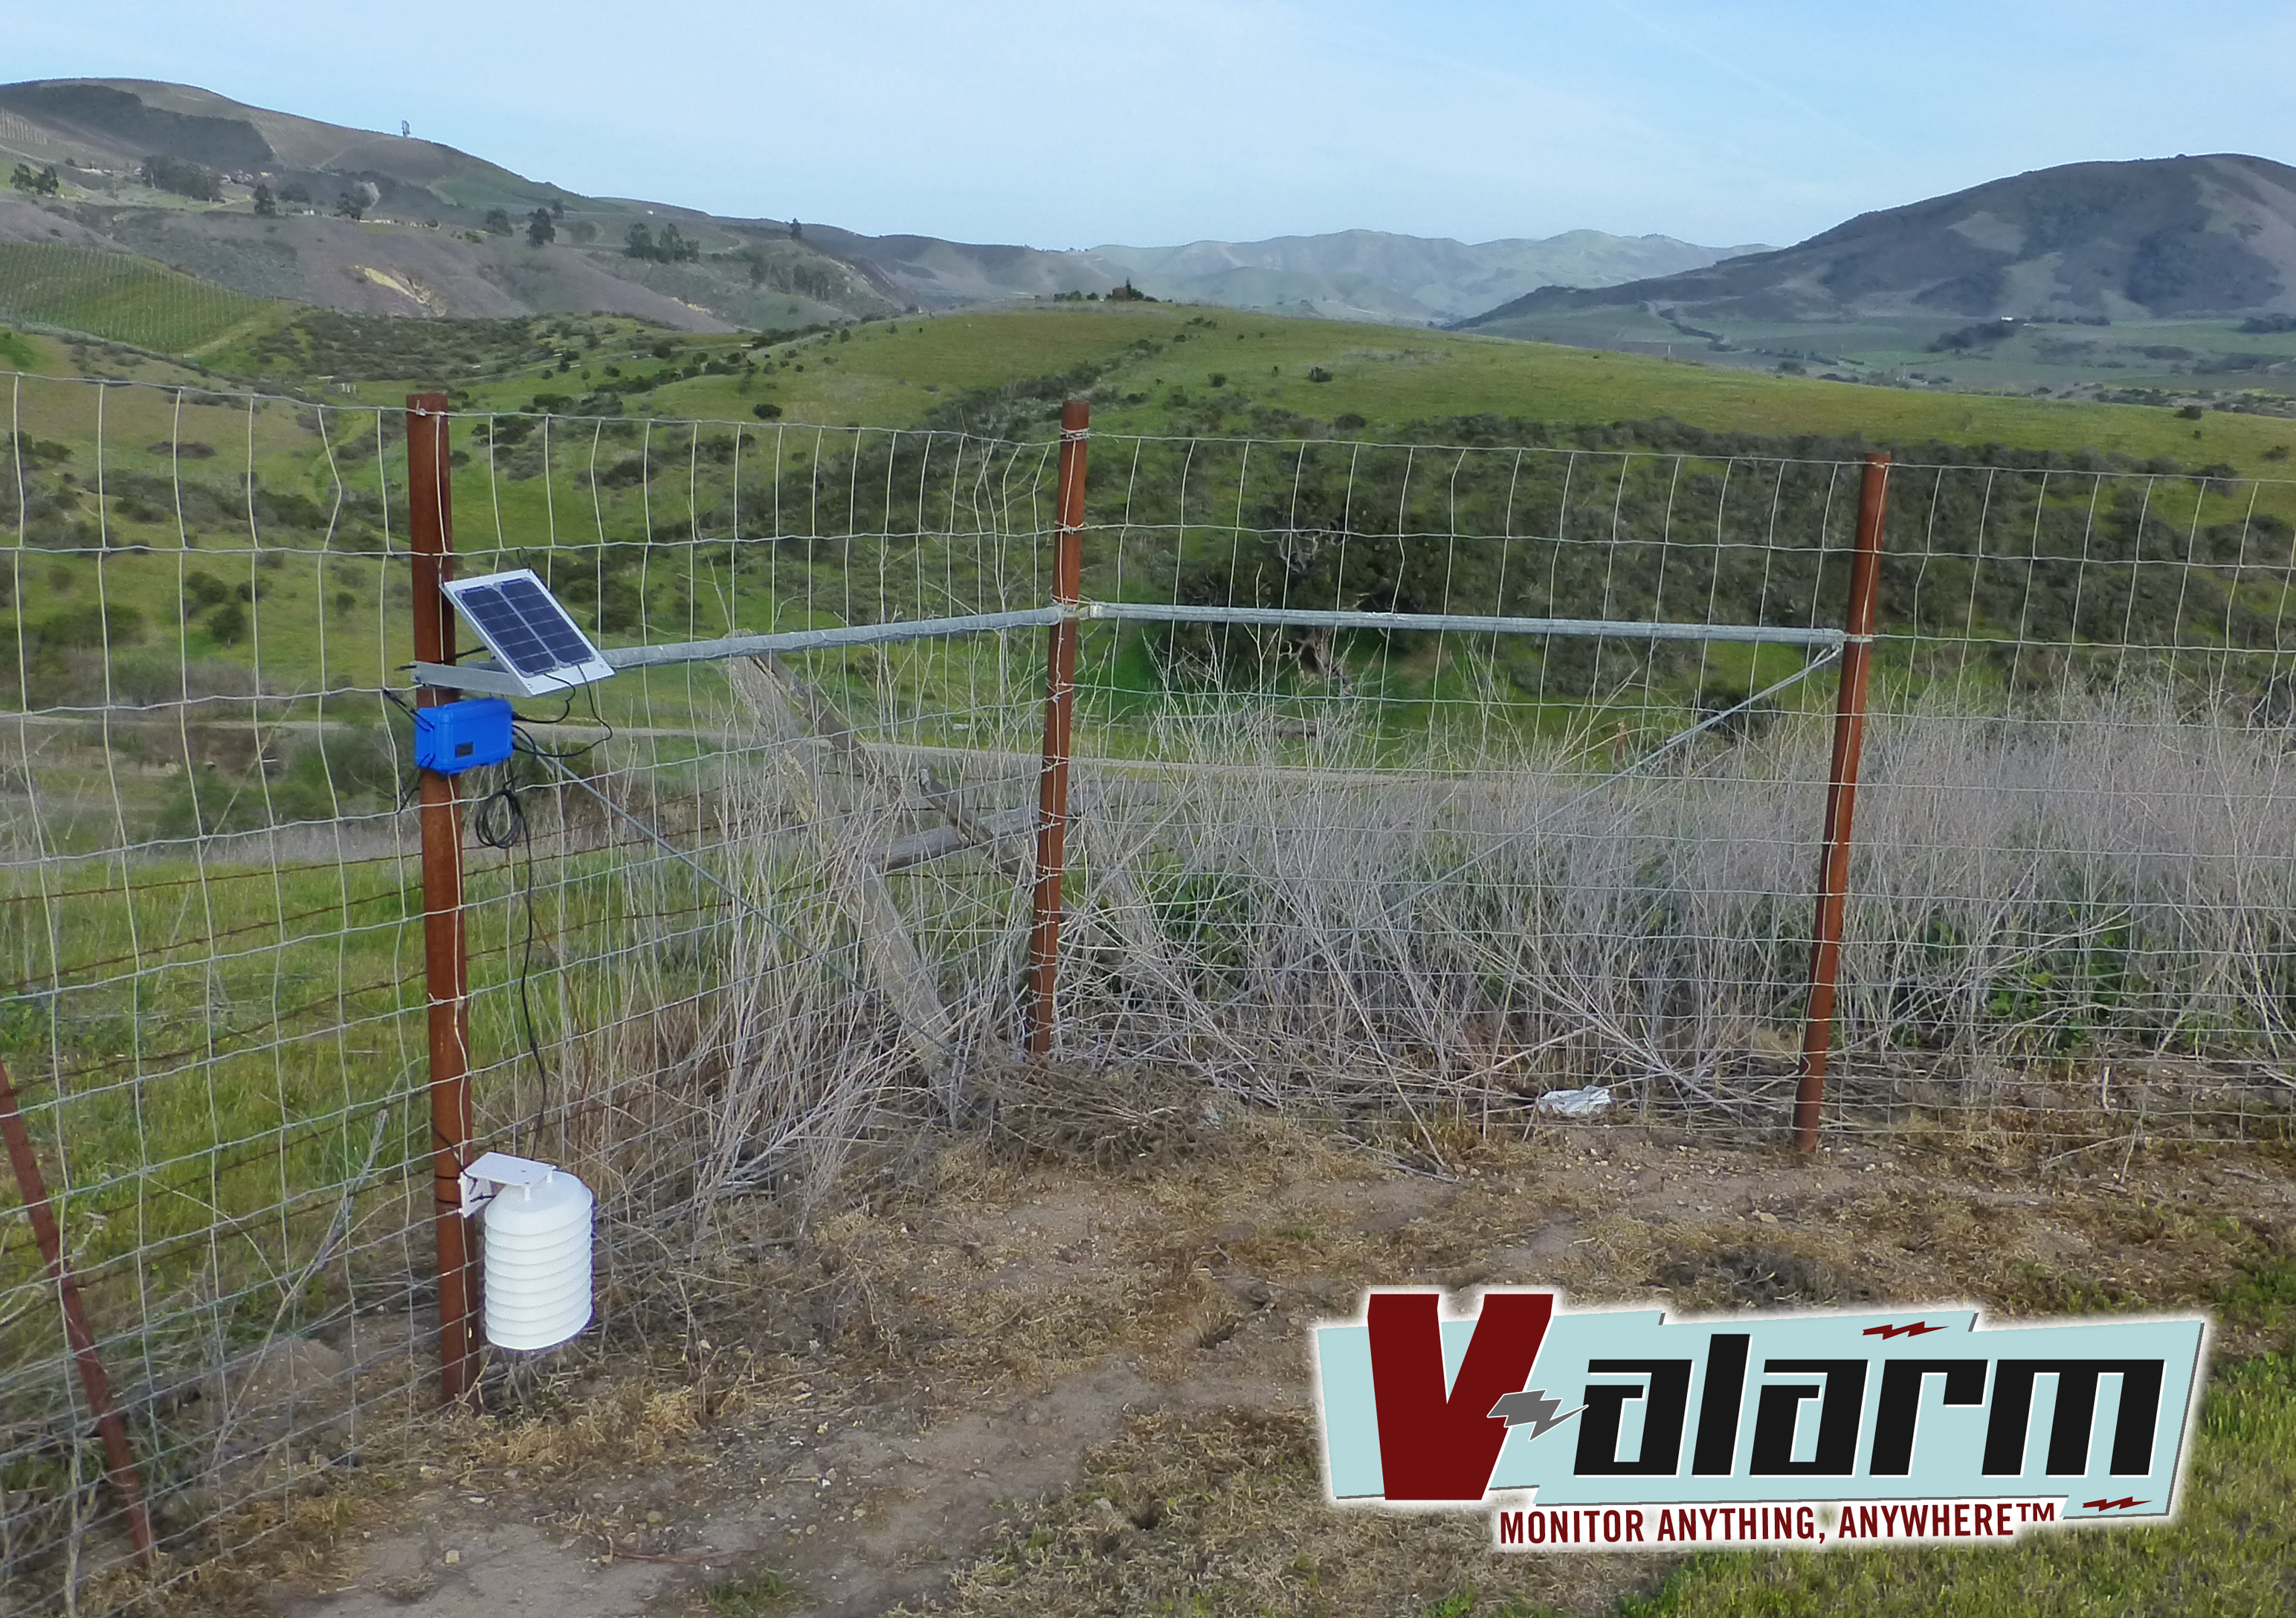 Remote Micro-Climate Monitoring: Solar-powered Valarm in a Vineyard